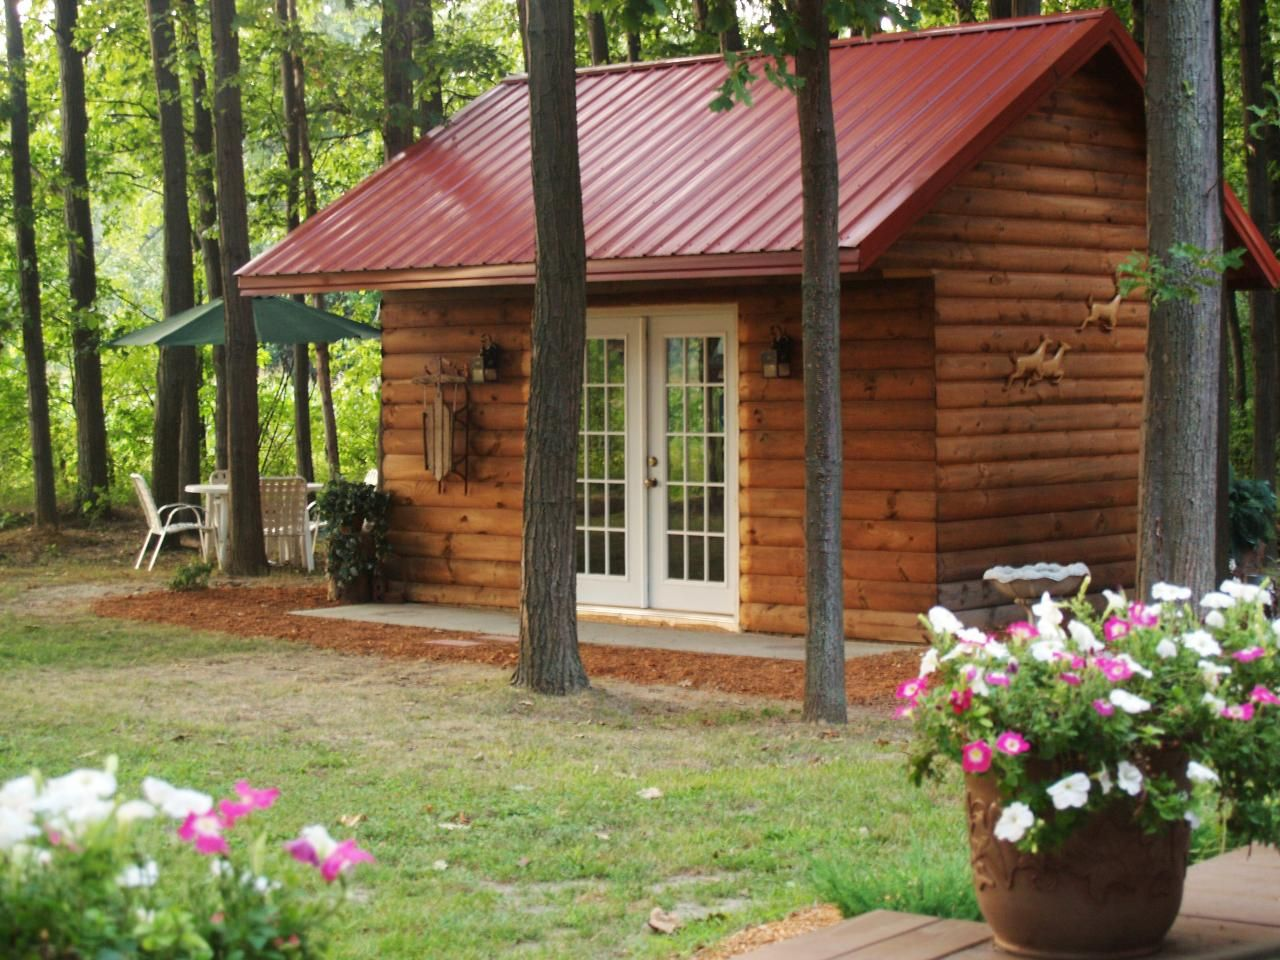 Retreat in Style With These Lady-Loving She Sheds | Hgtv, Decorating ...